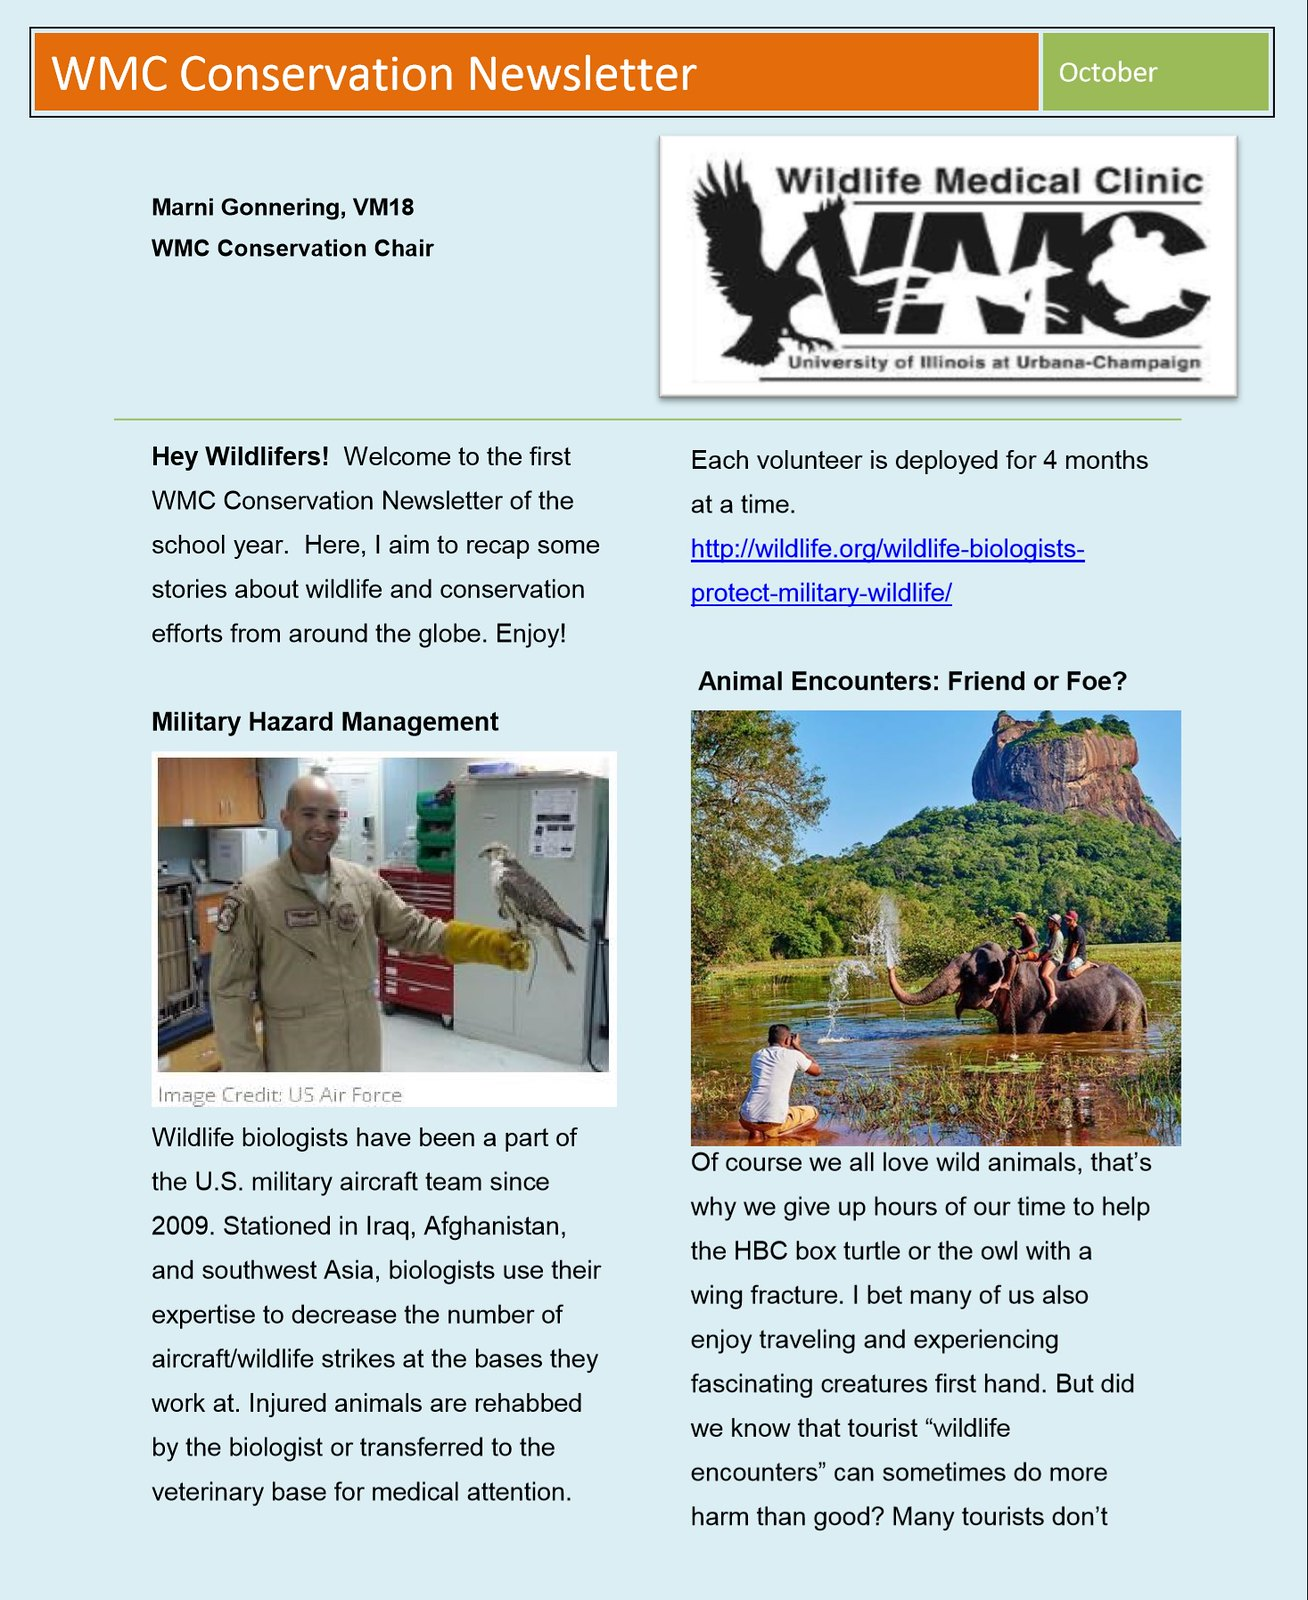 October | 2015 | Wildlife Medical Clinic at Illinois